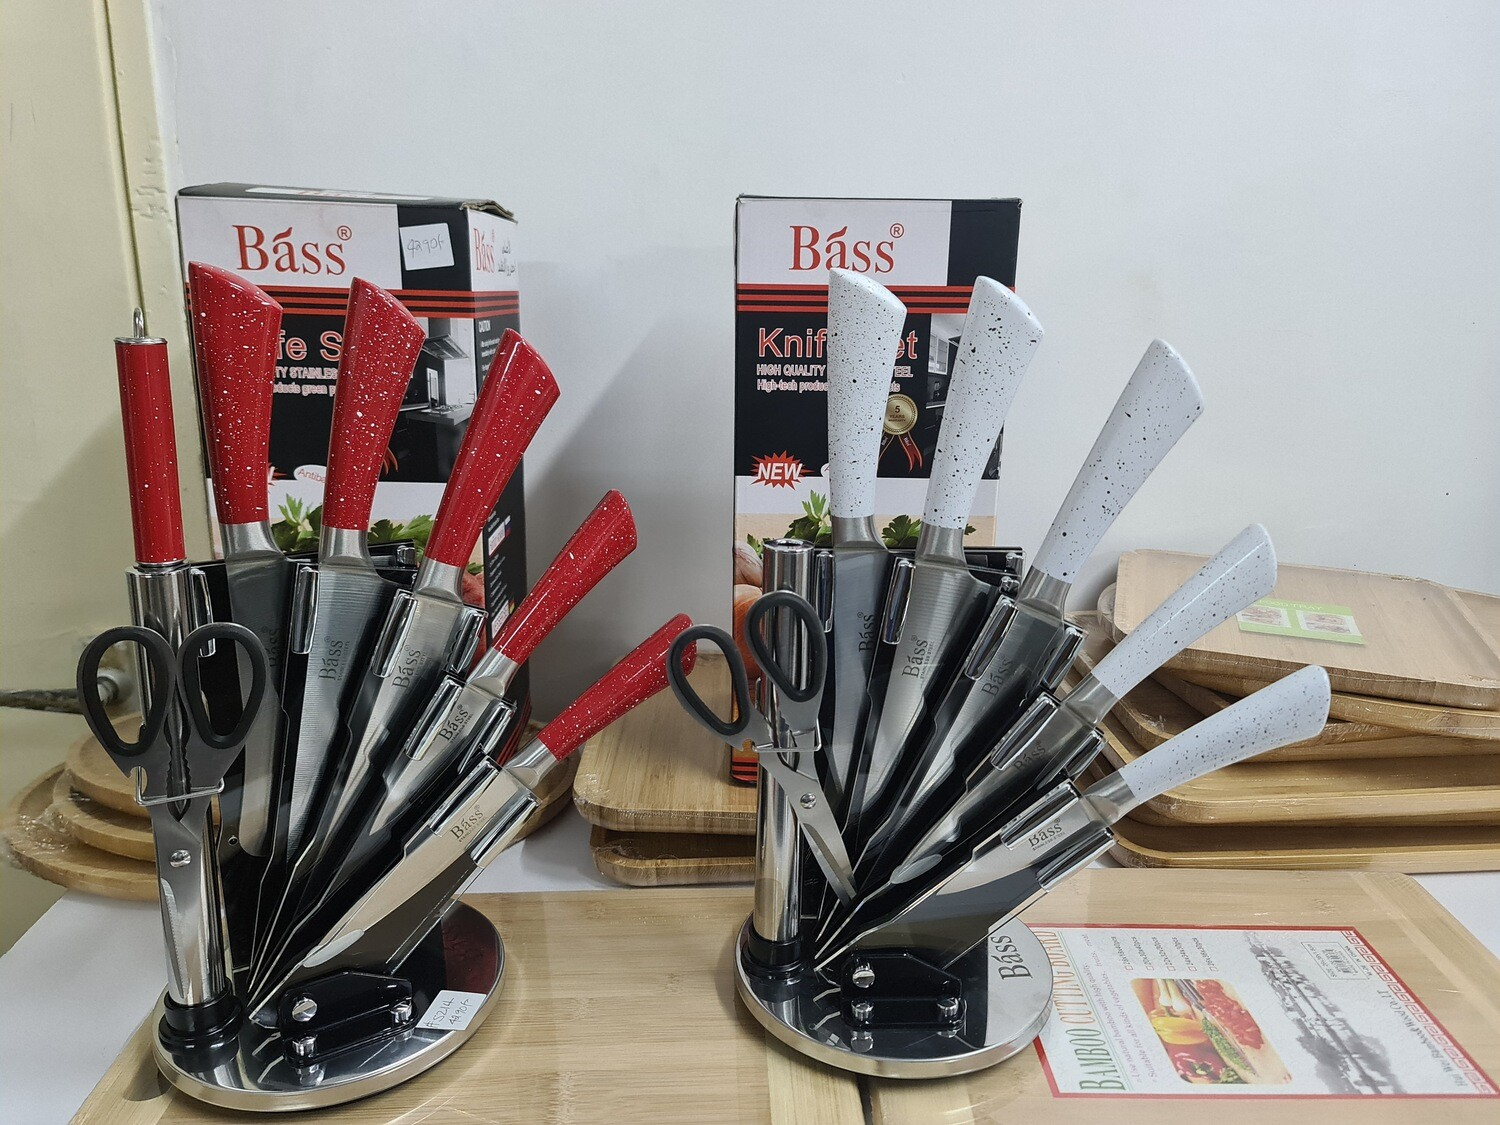 Bass Knife set 7pcs aesthetic rotating stand #5214 set of durable knives kitchen tools